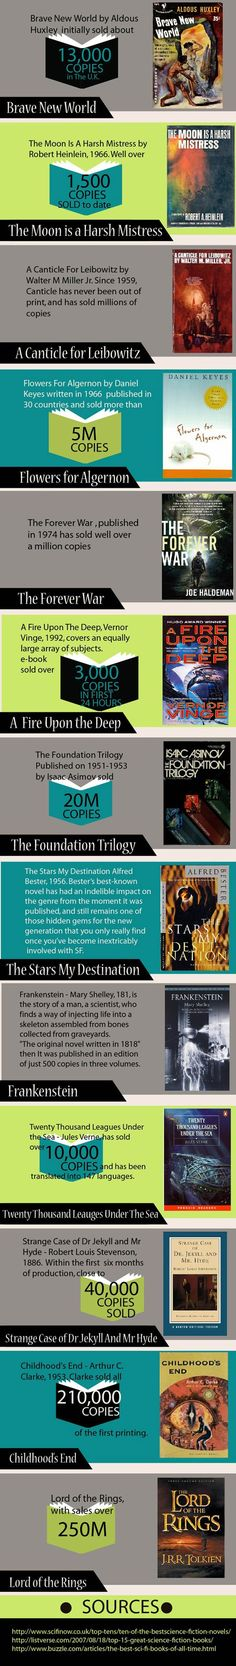 Best Selling Sci-Fi books of all time  02